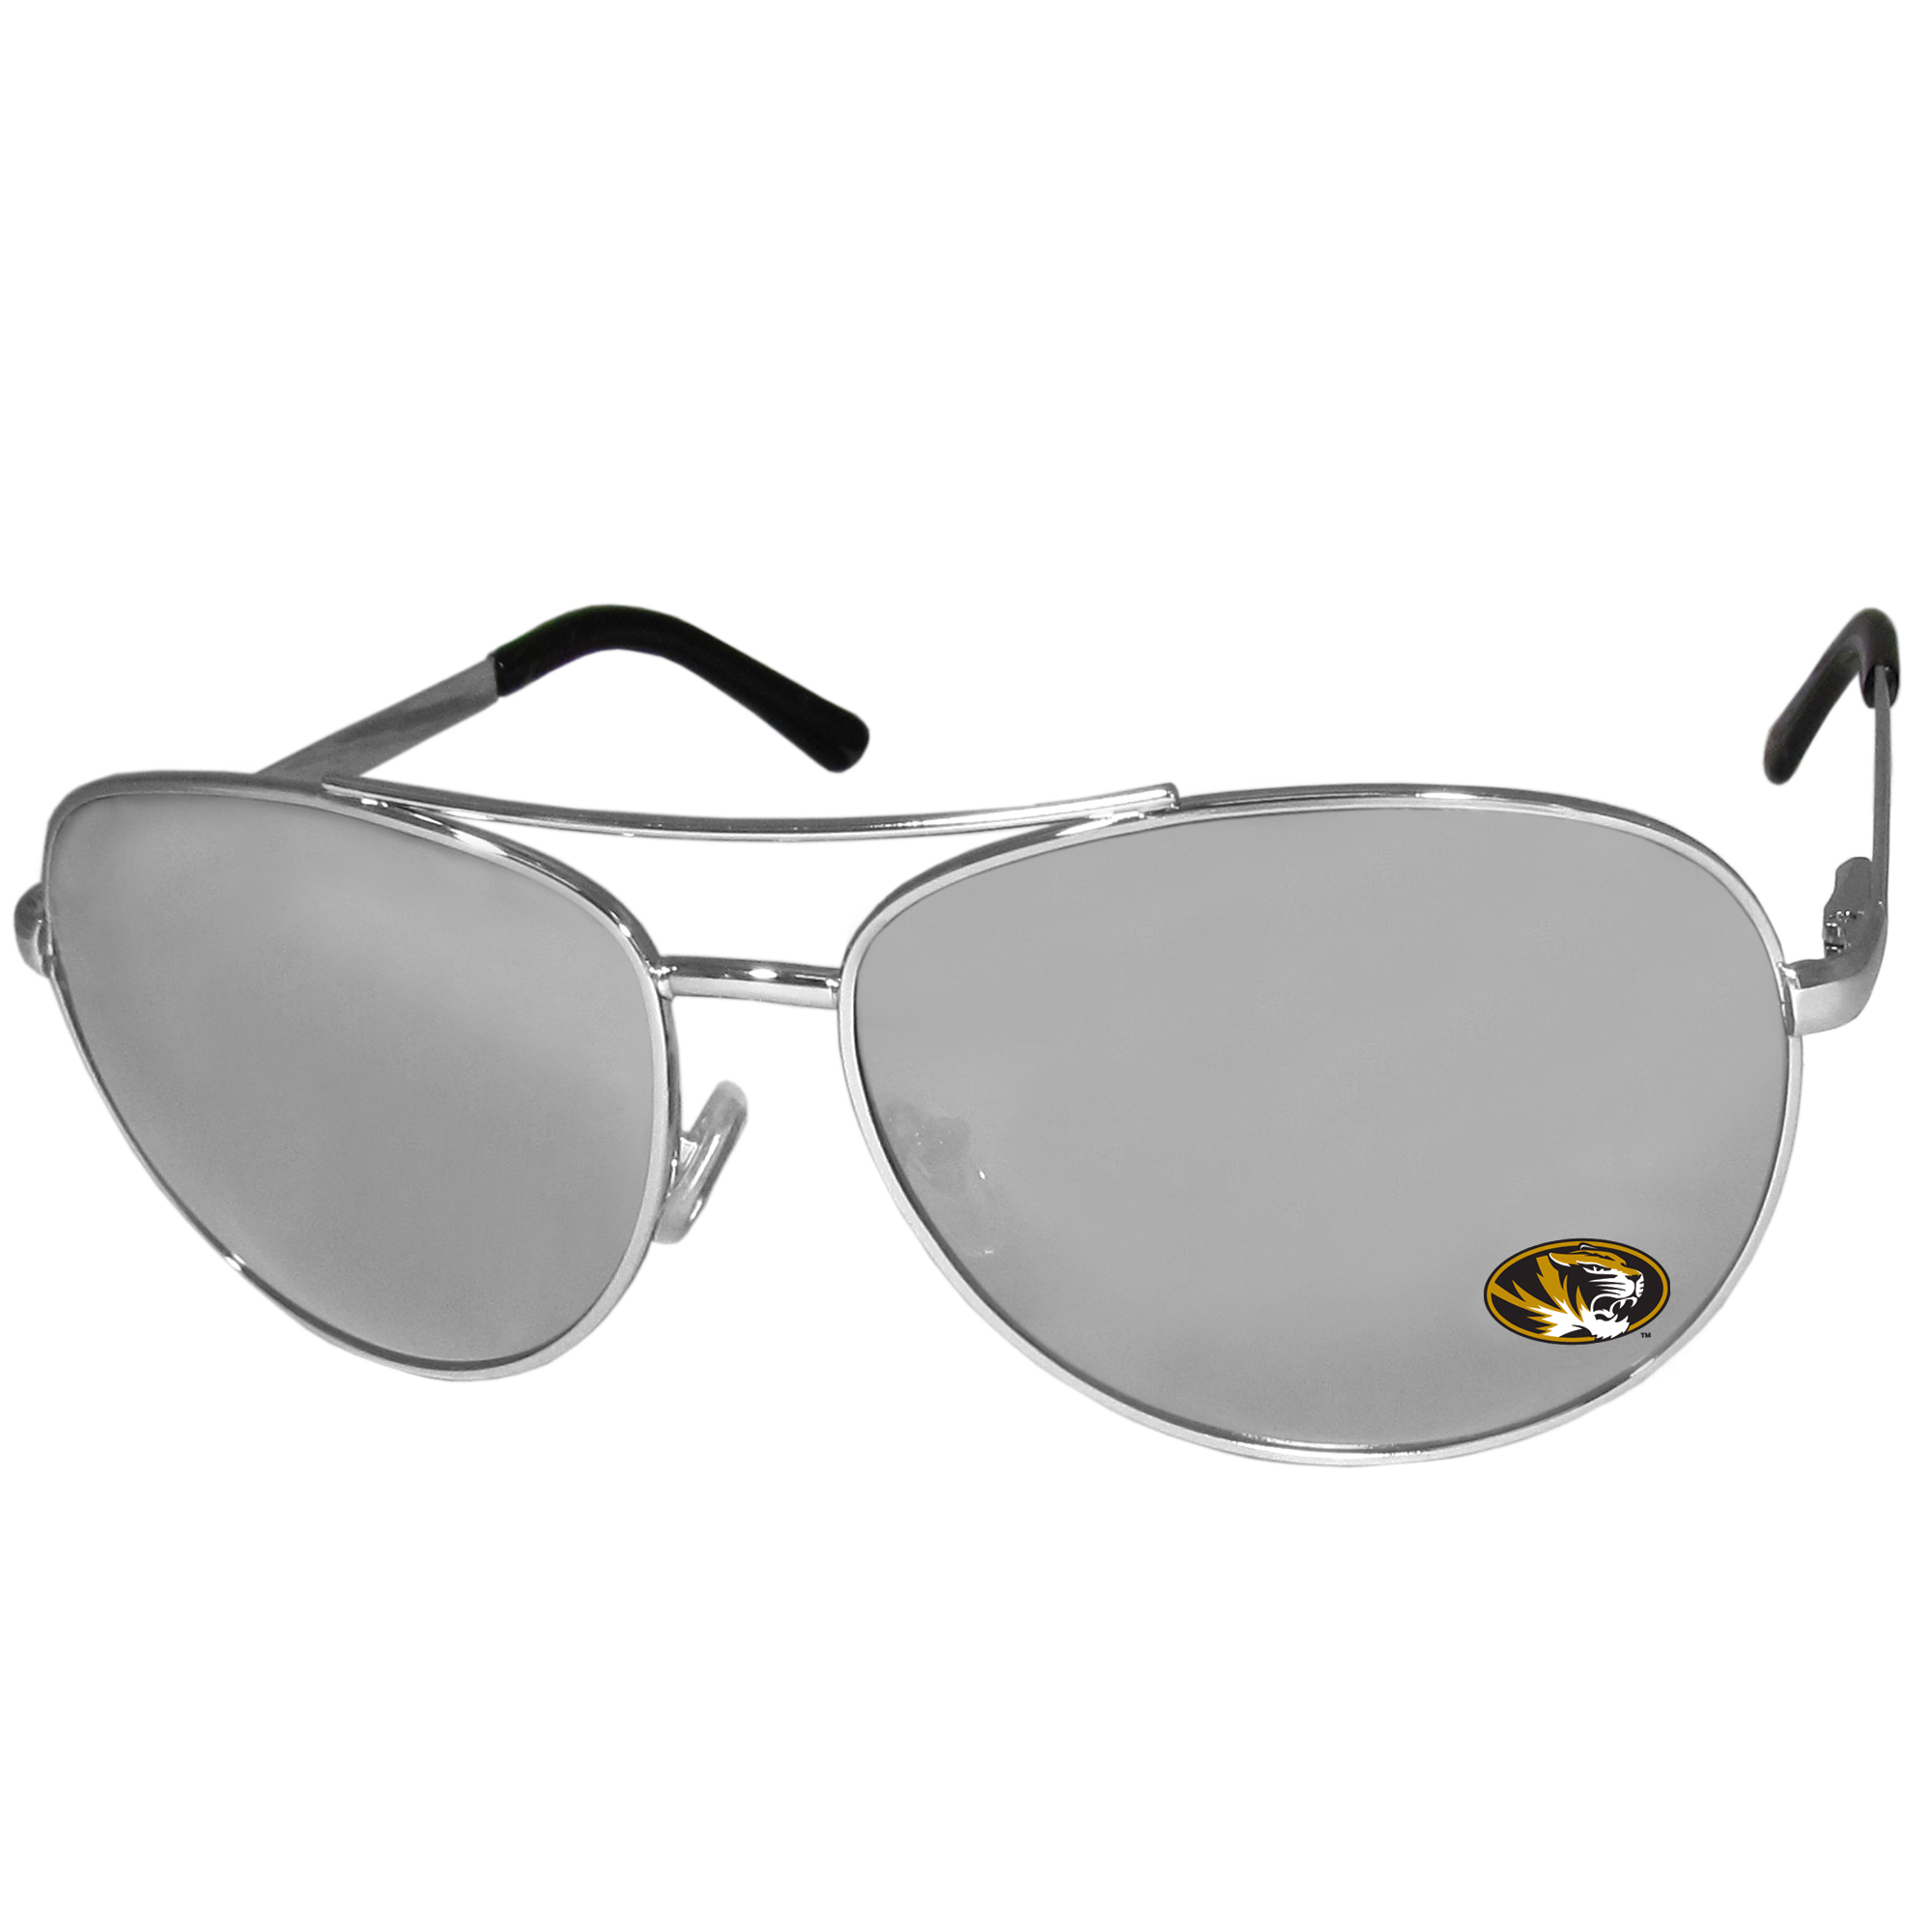 Missouri Tigers Aviator Sunglasses - Our aviator sunglasses have the iconic aviator style with mirrored lenses and metal frames. The glasses feature a silk screened Missouri Tigers logo in the corner of the lense. 100% UVA/UVB protection.